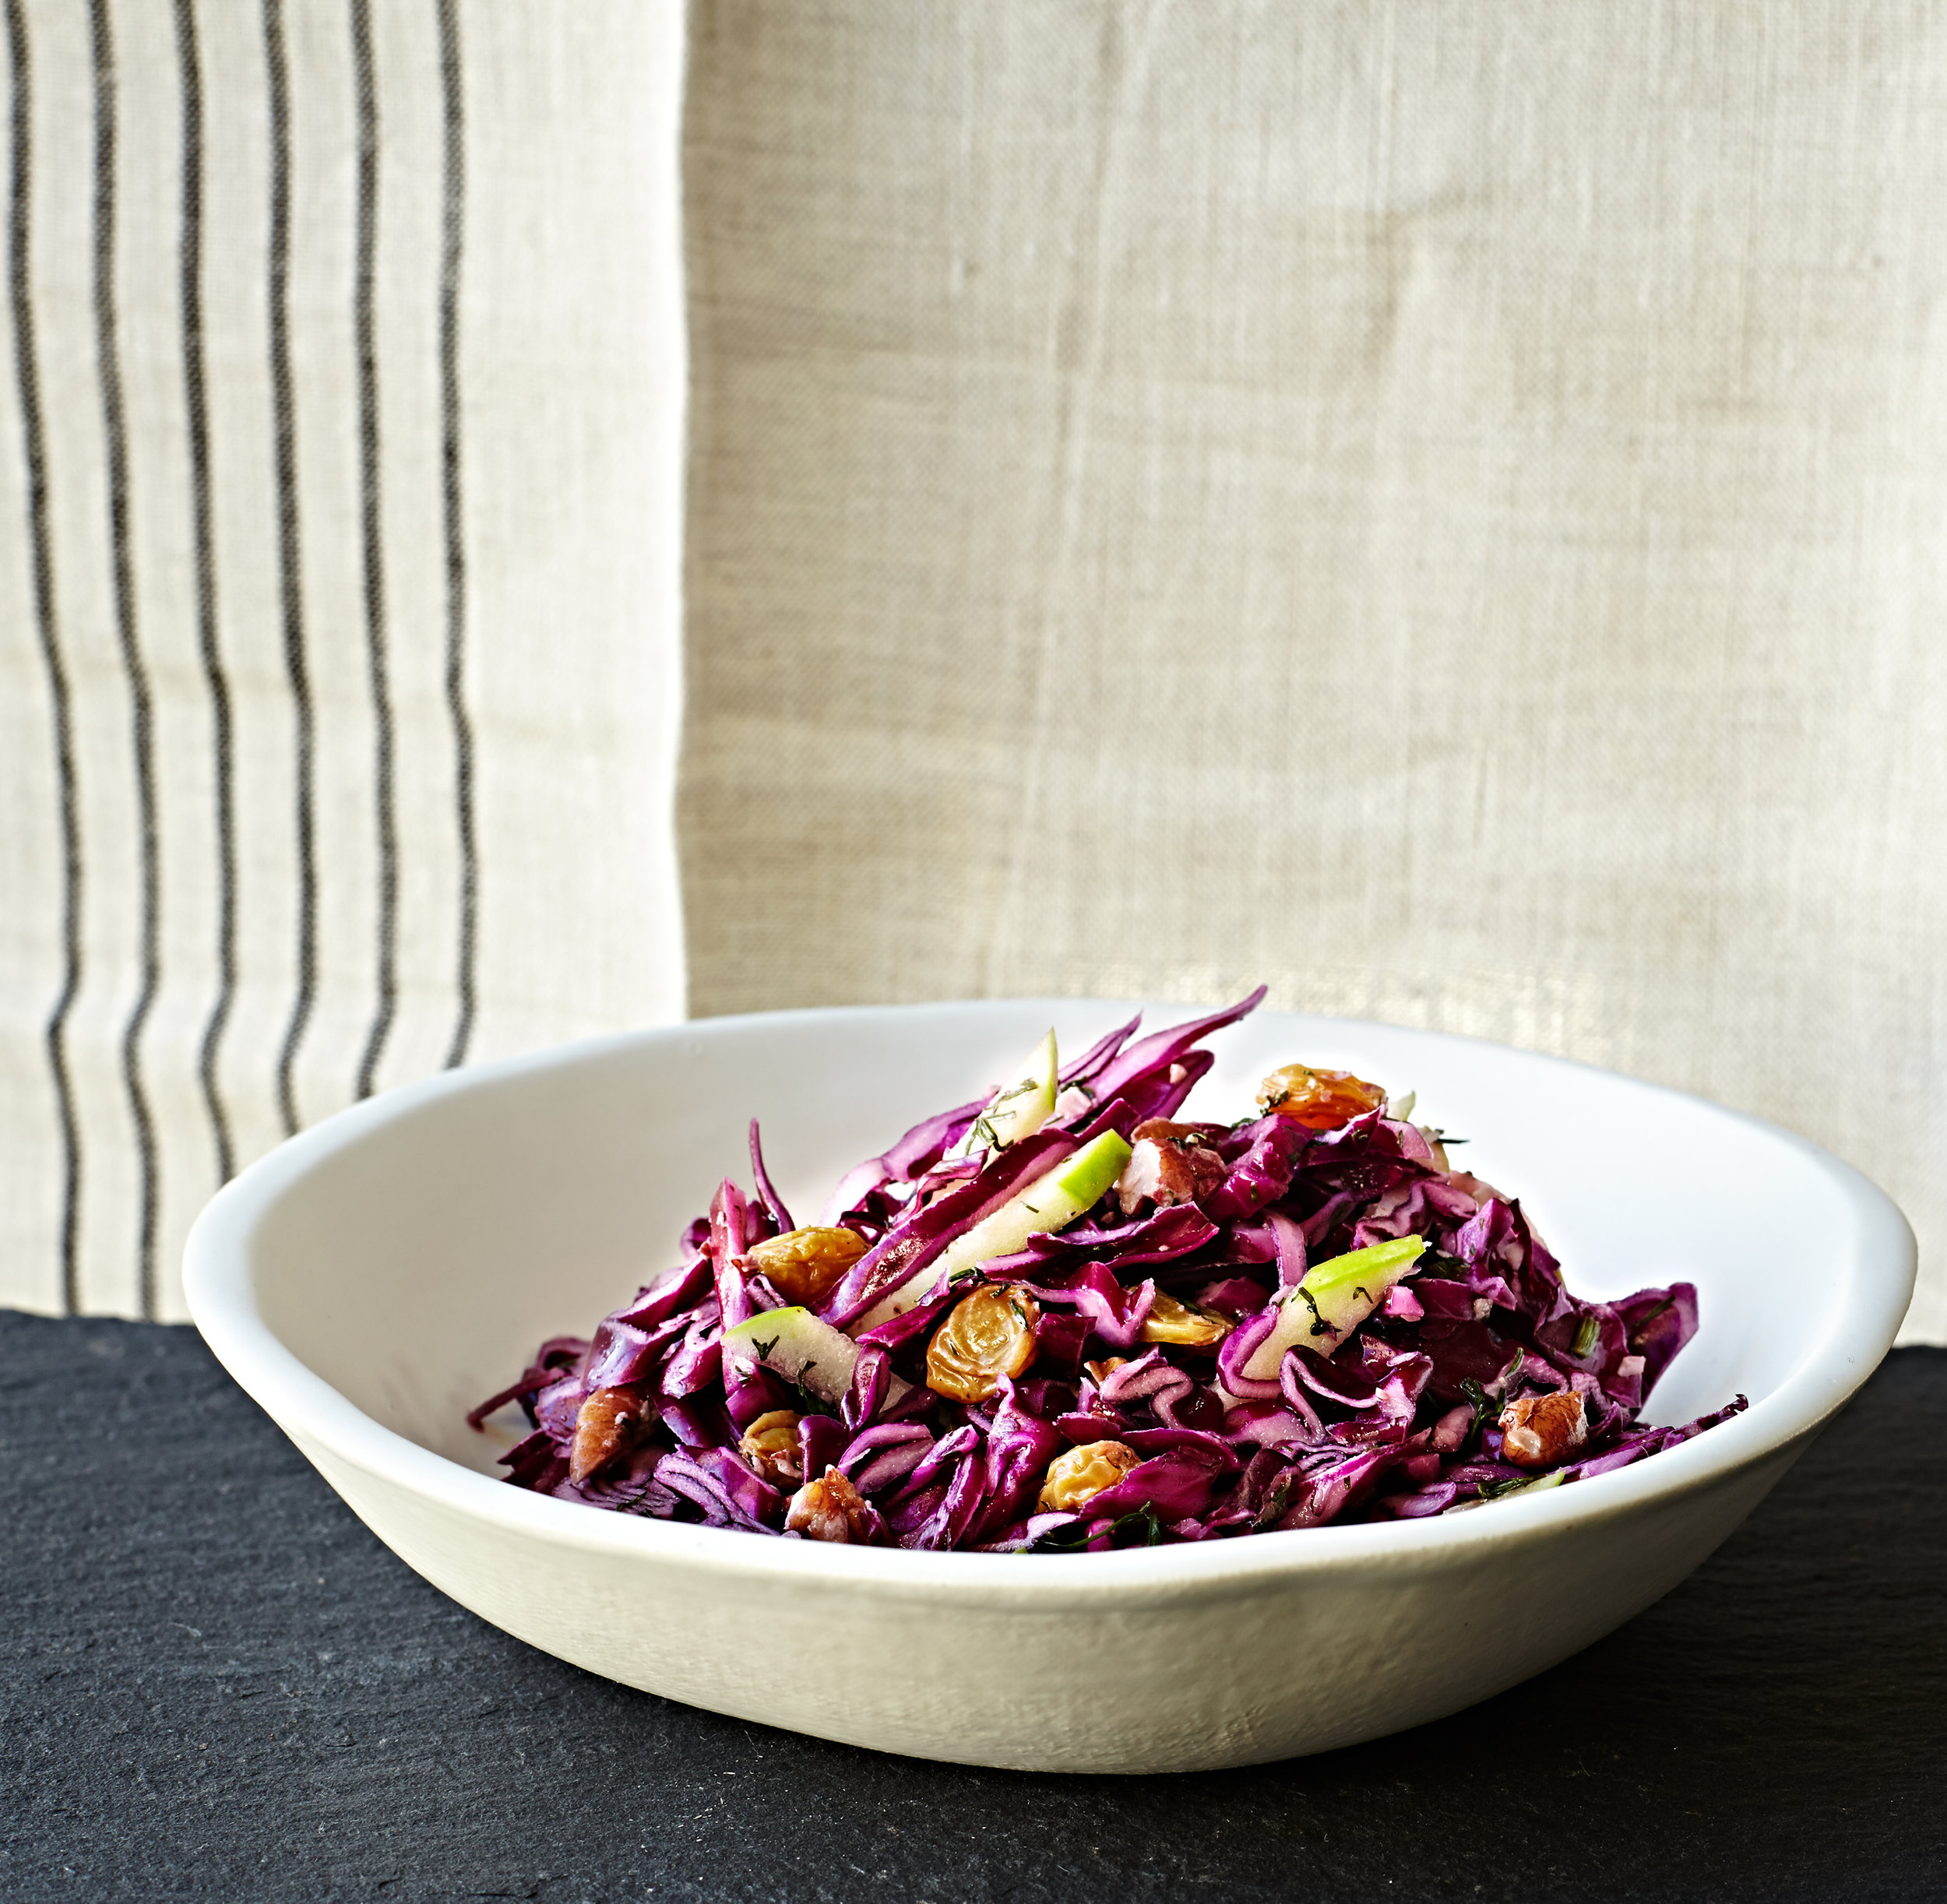 Tangy pickled red cabbage slaw with raisins and apples